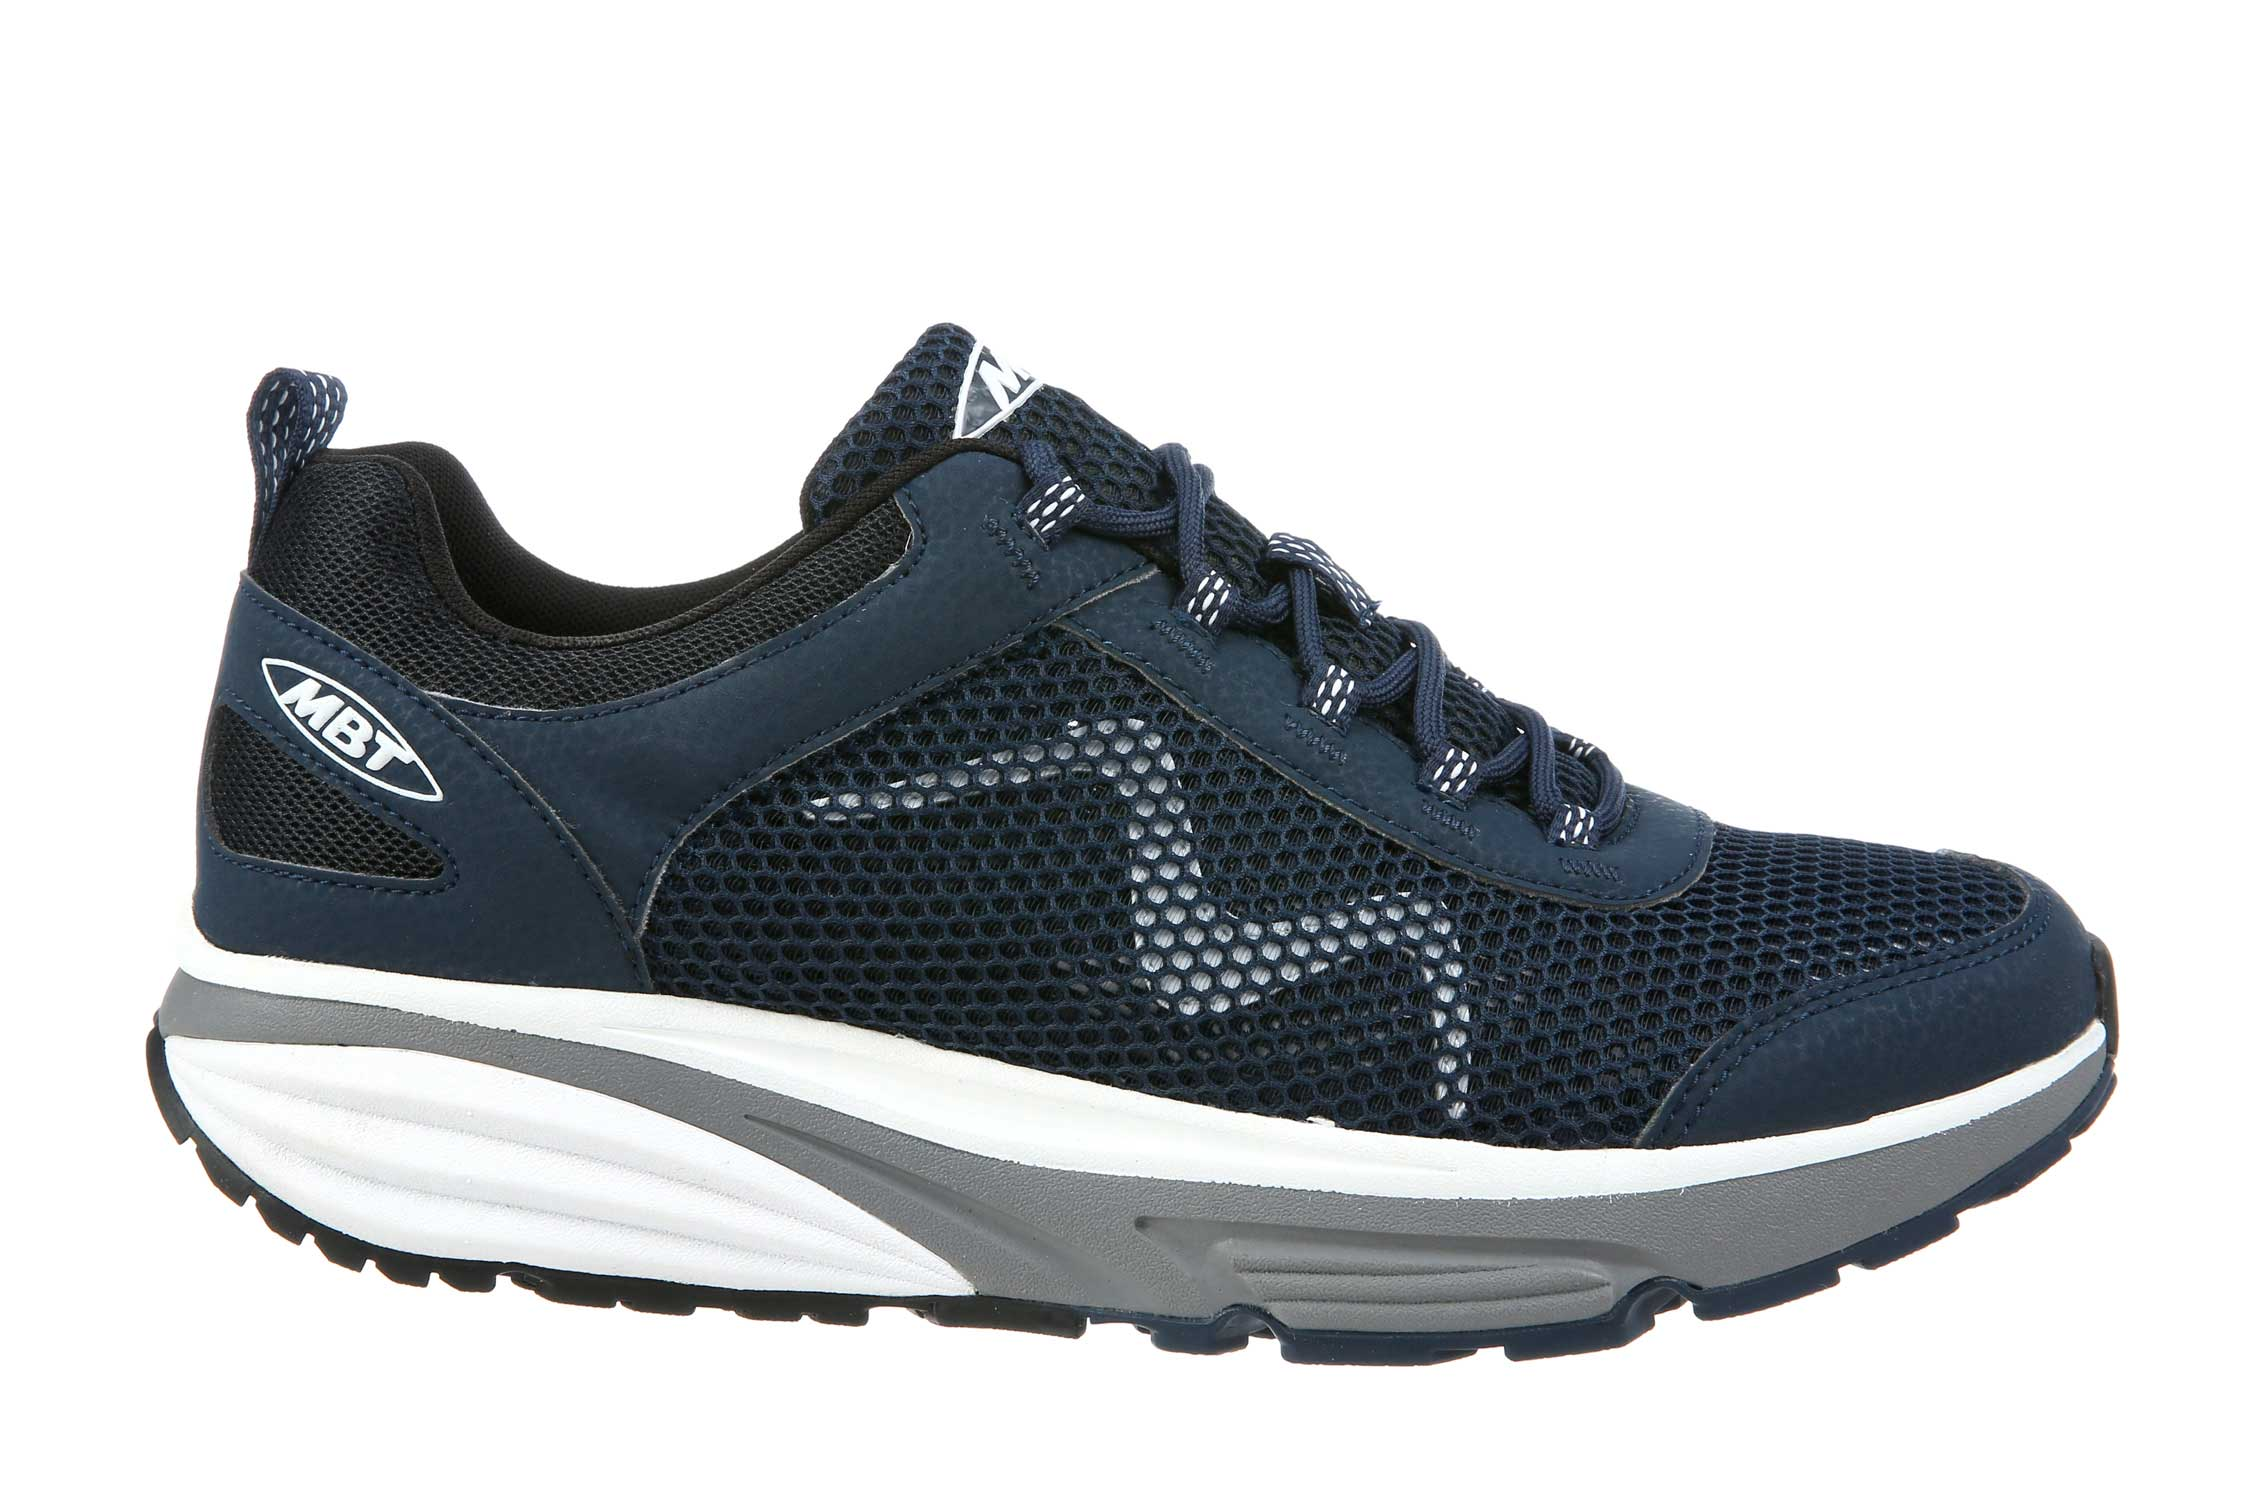 2d3a0333c042 The MBT Shoes Men s Colorado 17 Lace Up Athletic Shoe - 702011 - The  Colorado 17 is a casual fitness walking shoe designed to increase your  active lifestyle ...